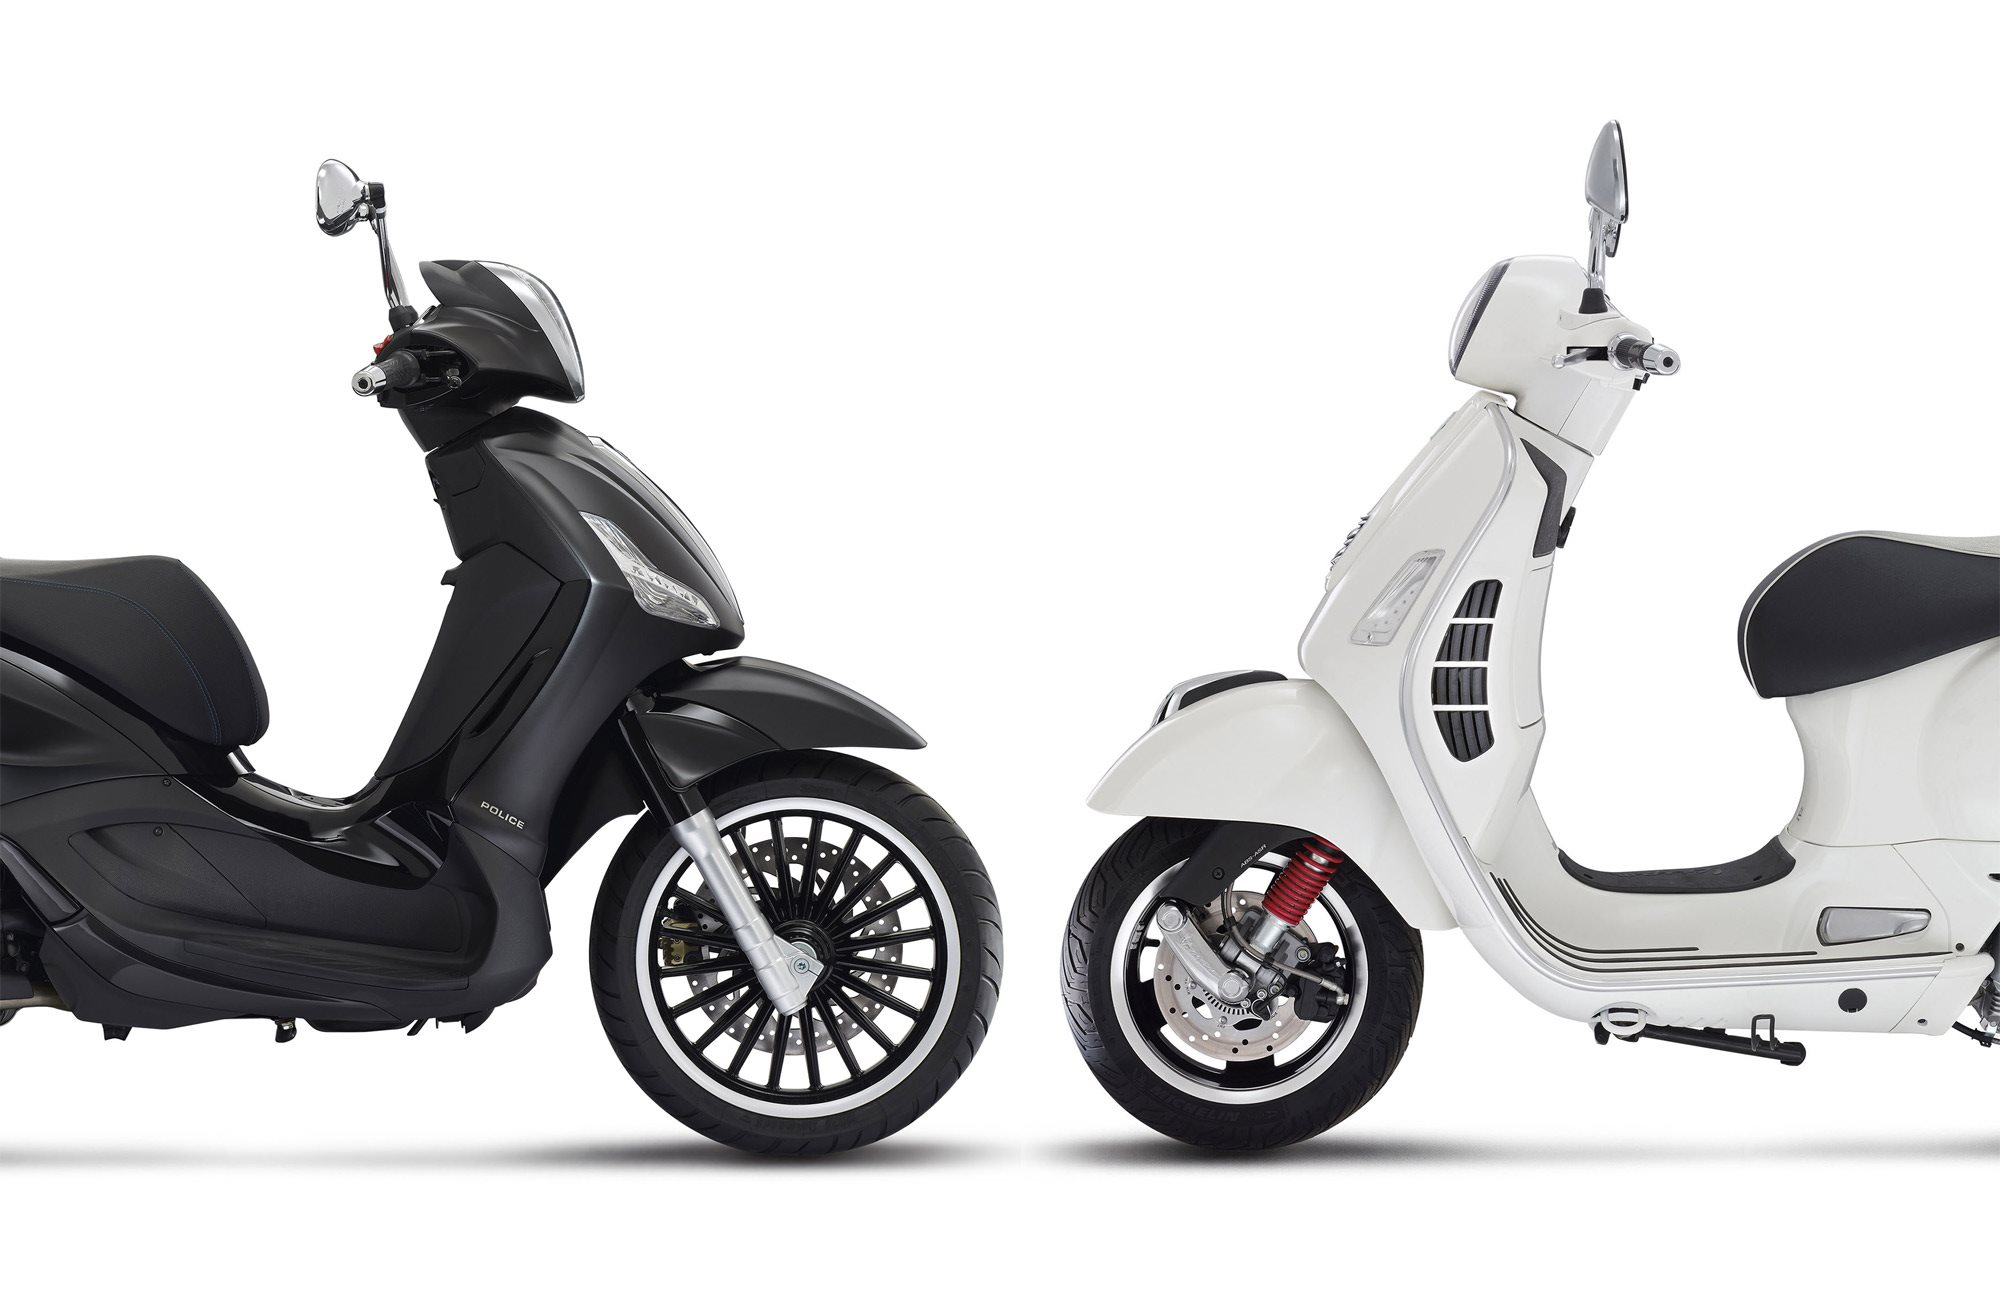 vespa gts 300ie super vs piaggio beverly 300ie police. Black Bedroom Furniture Sets. Home Design Ideas